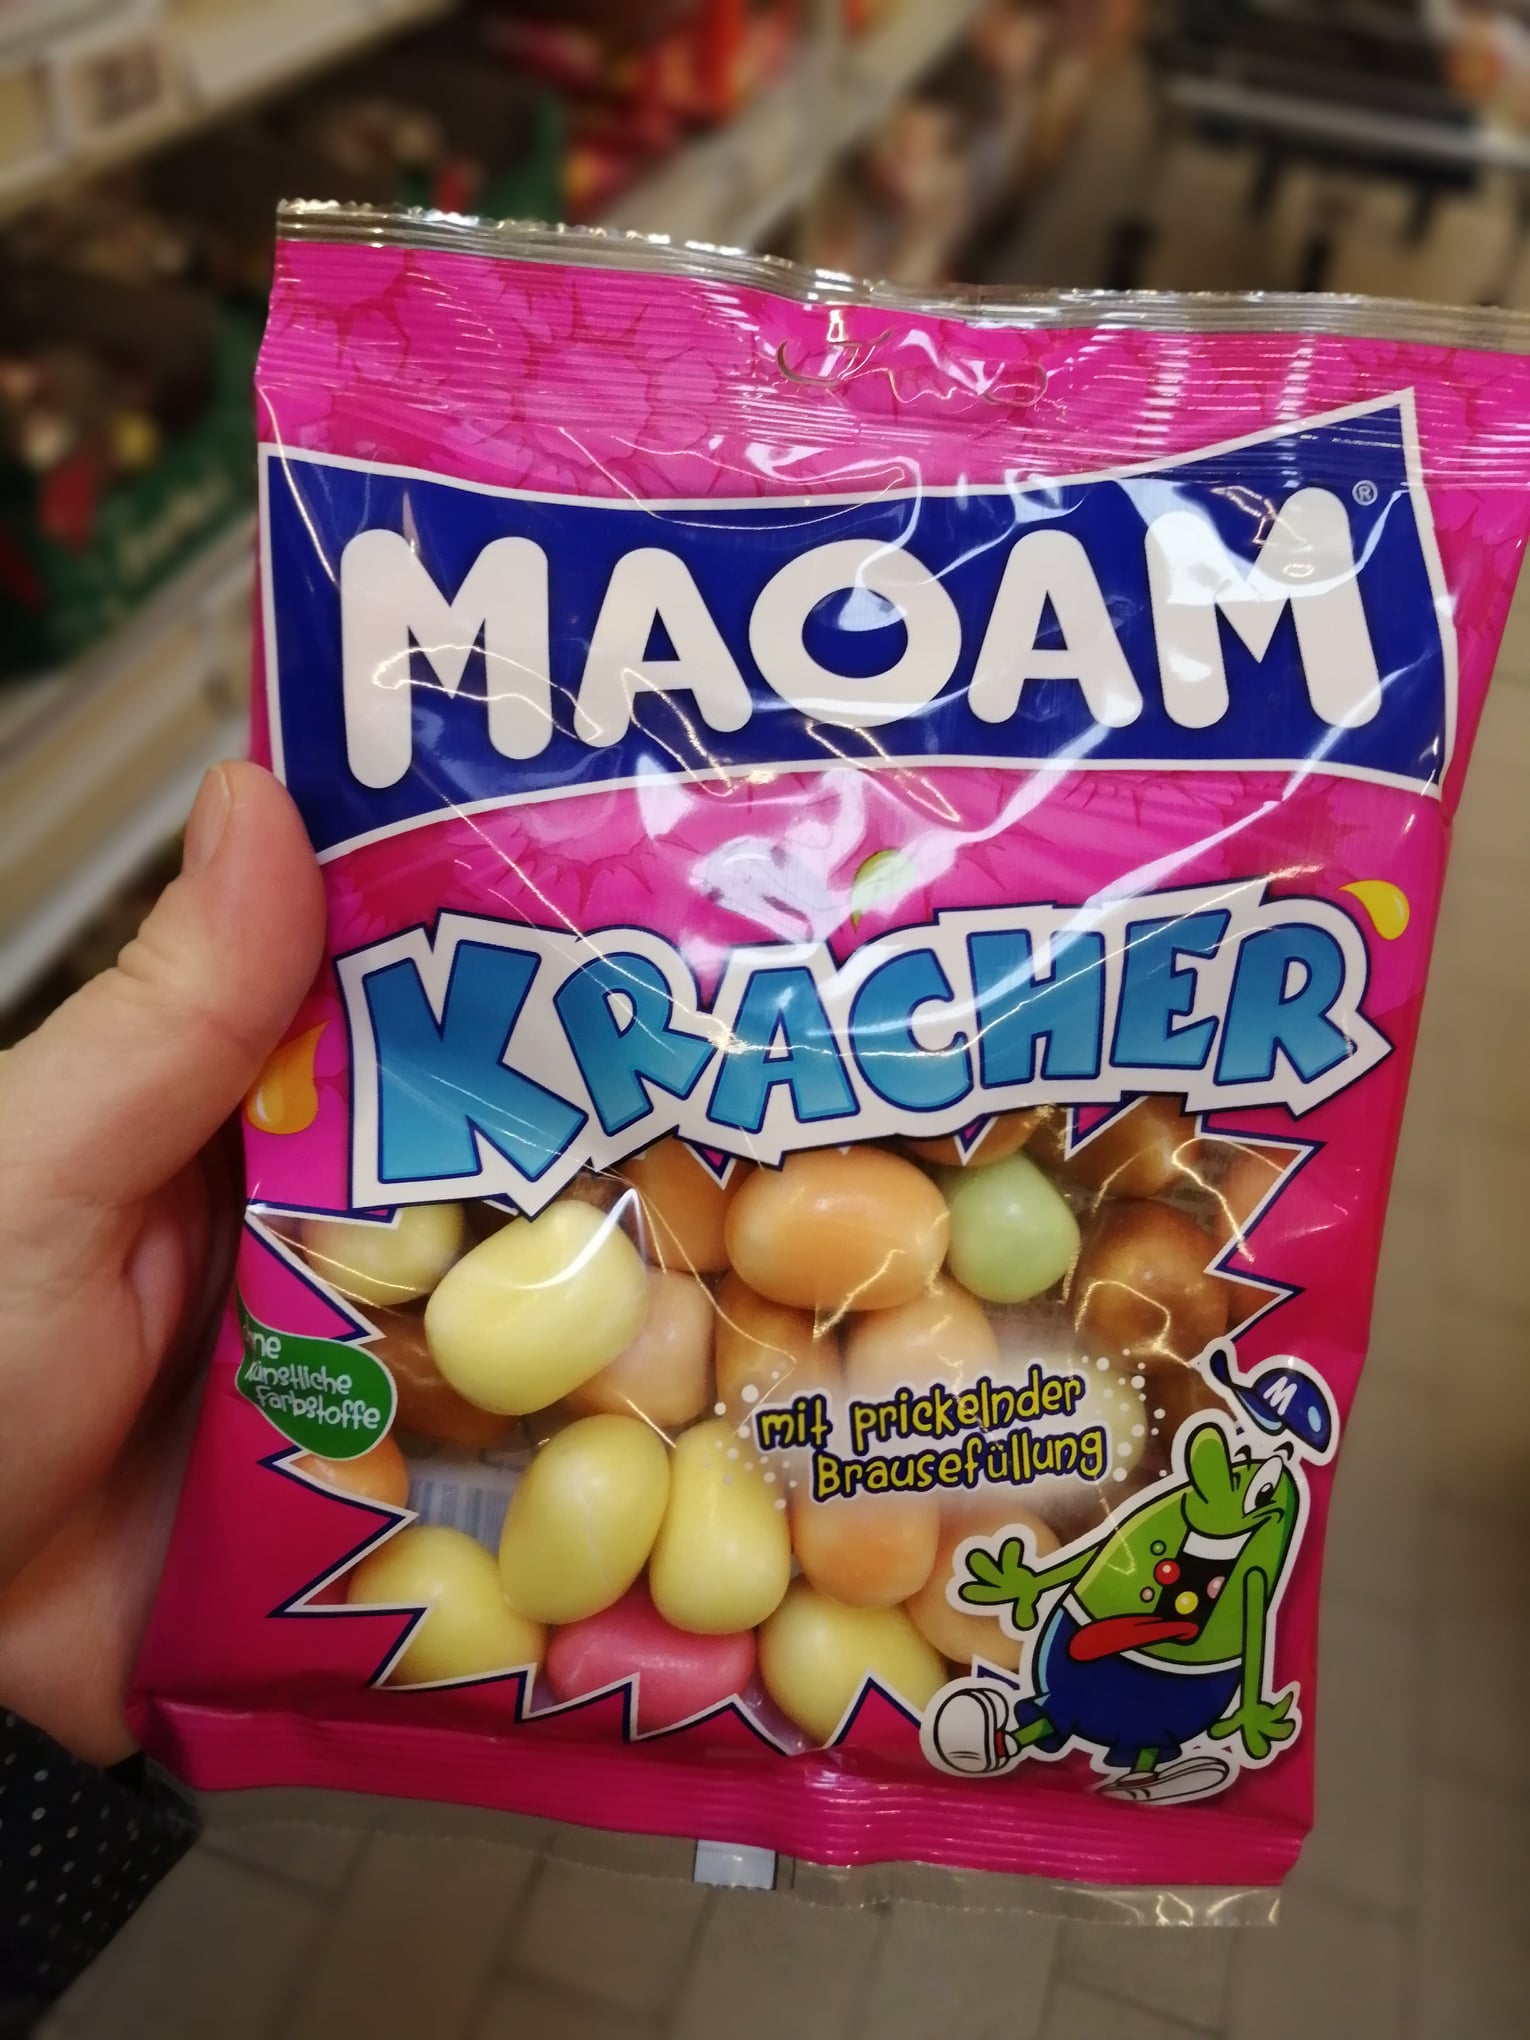 maoam kracher, ks